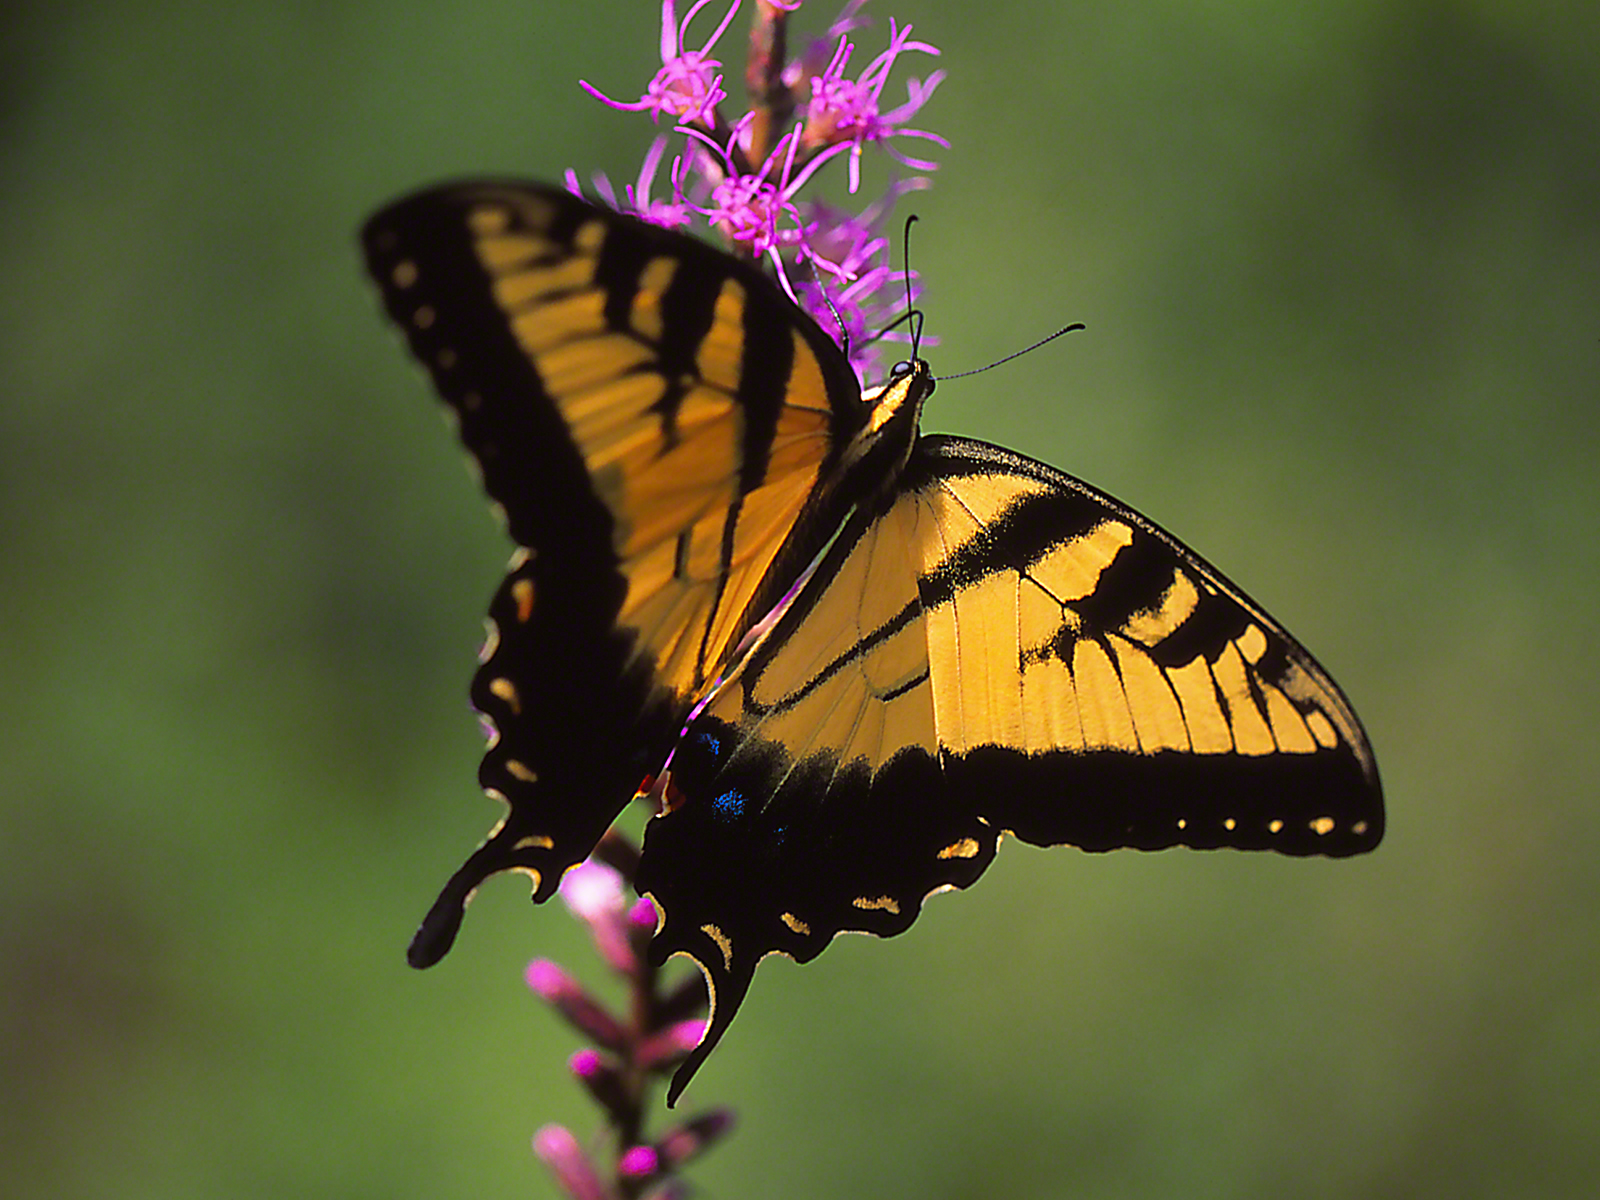 Male Eastern Tiger Swallowtail Butterfly photographed by Jeff Zablow at Cloudland Canyon State Park, GA